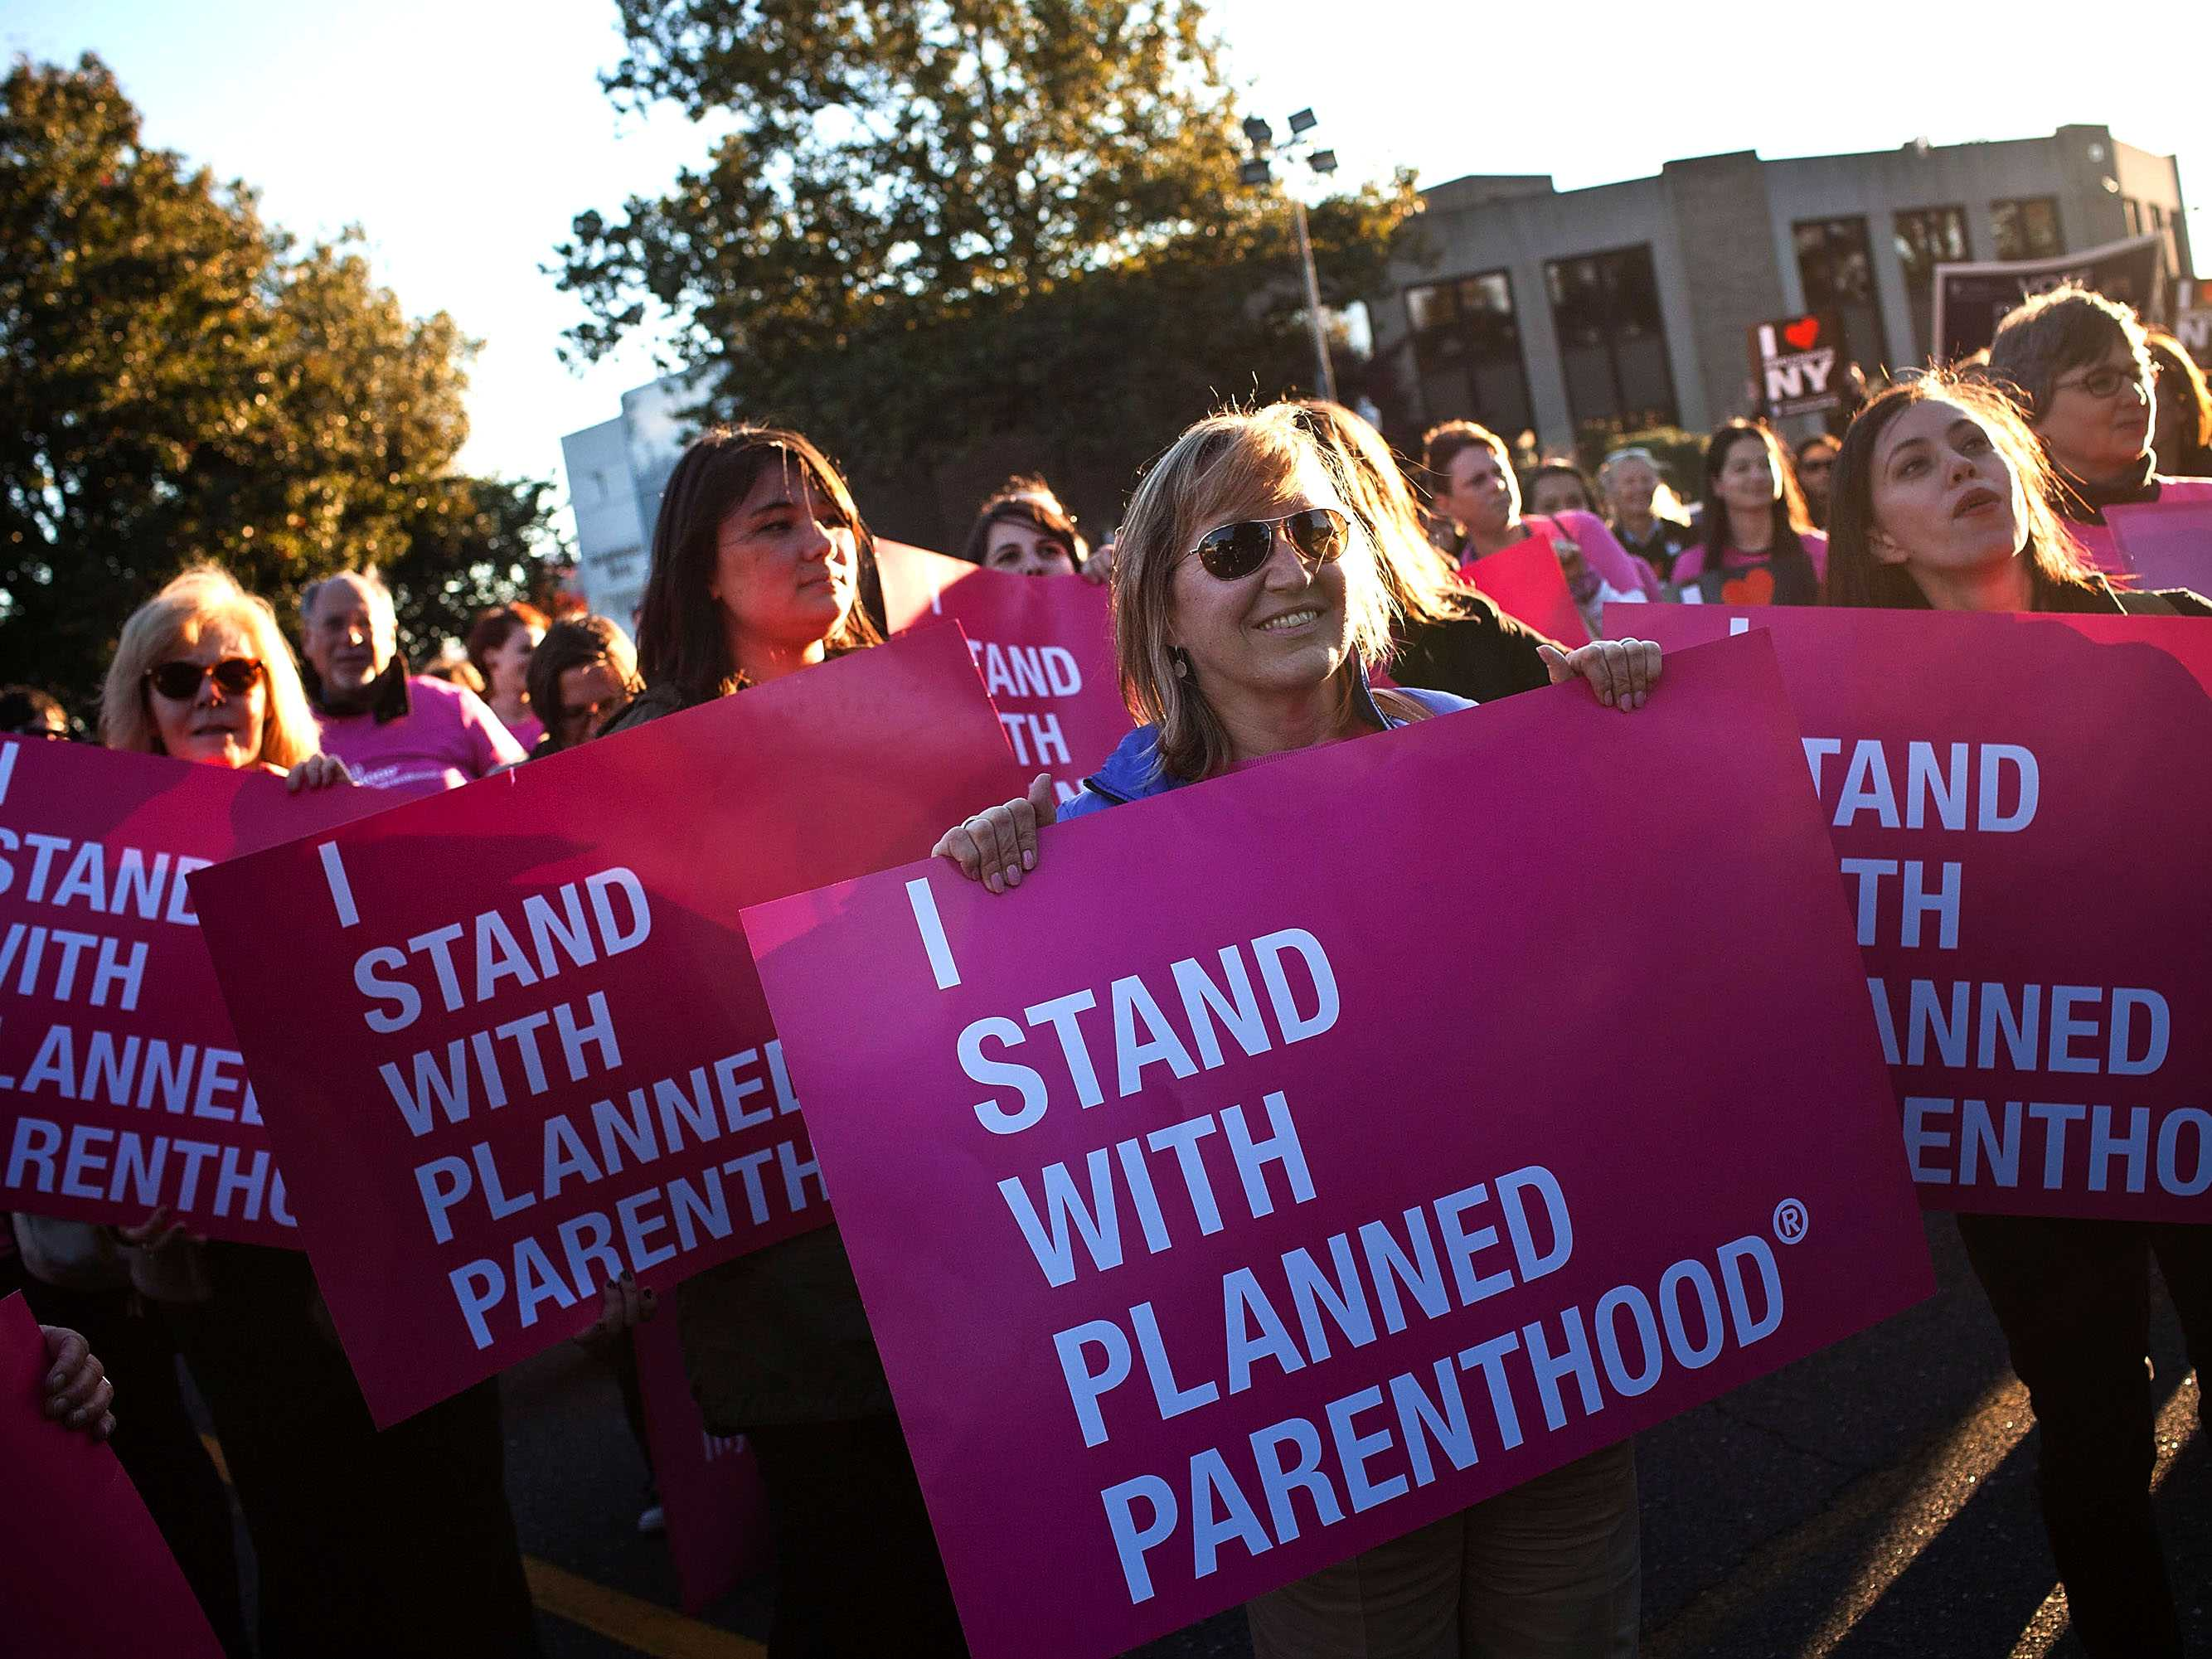 HEMPSTEAD, NY - OCTOBER 16:  Women protest for continued funding of Planned Parenthood outside Hofstra University prior to the second presidential debate on October 16, 2012 in Hempstead, New York. U.S. President Barack Obama and Republican presidential candidate Mitt Romney will debate in a town hall style meeting this evening at the university.  (Photo by Andrew Burton/Getty Images)